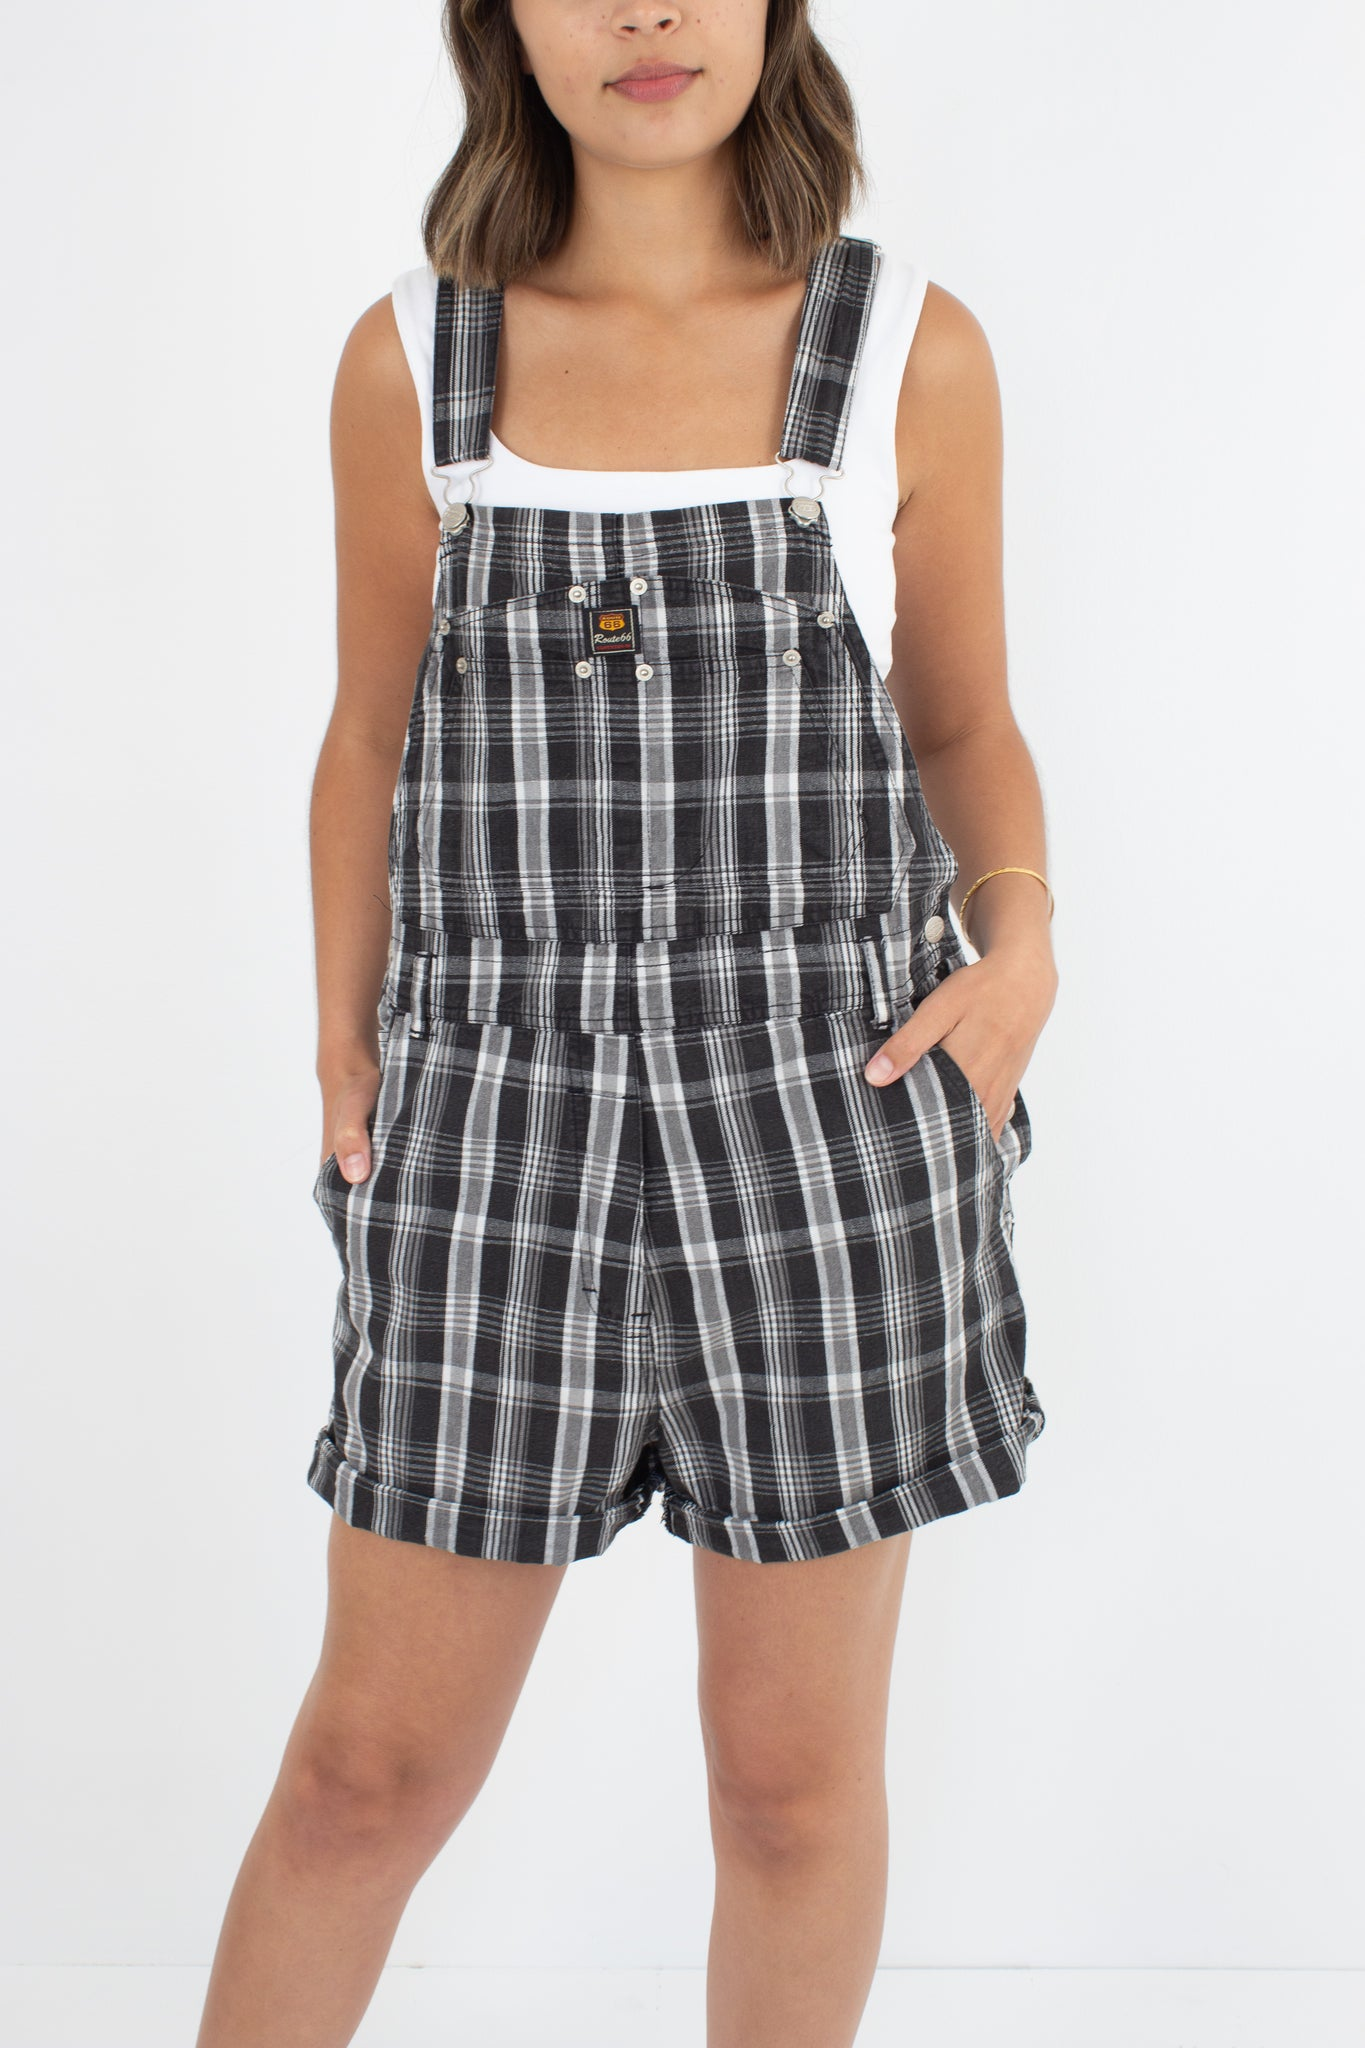 Black & White Check Overalls - Route 66 - Size L